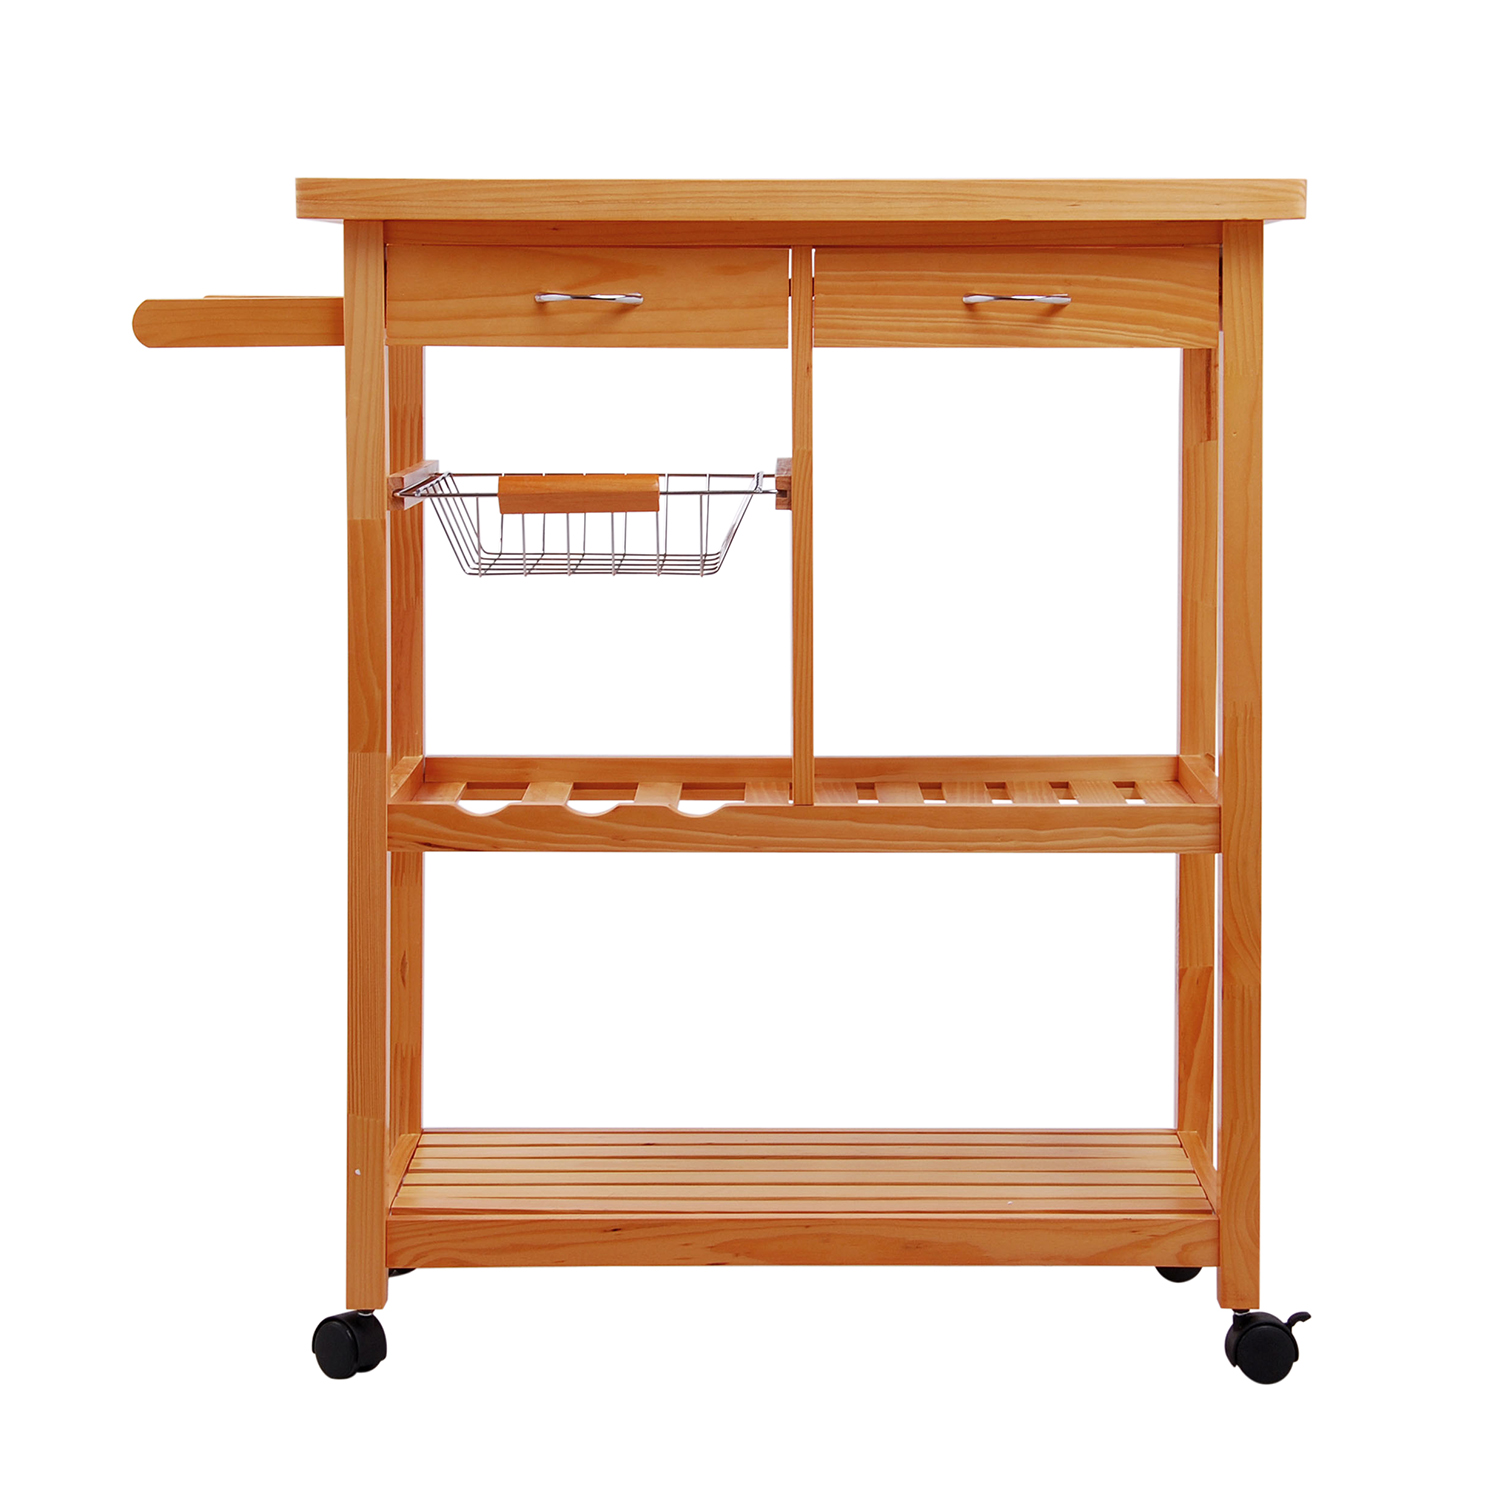 Homcom Portable Rolling Home Storage Cart Drawers Kitchen Table Trolley Wood